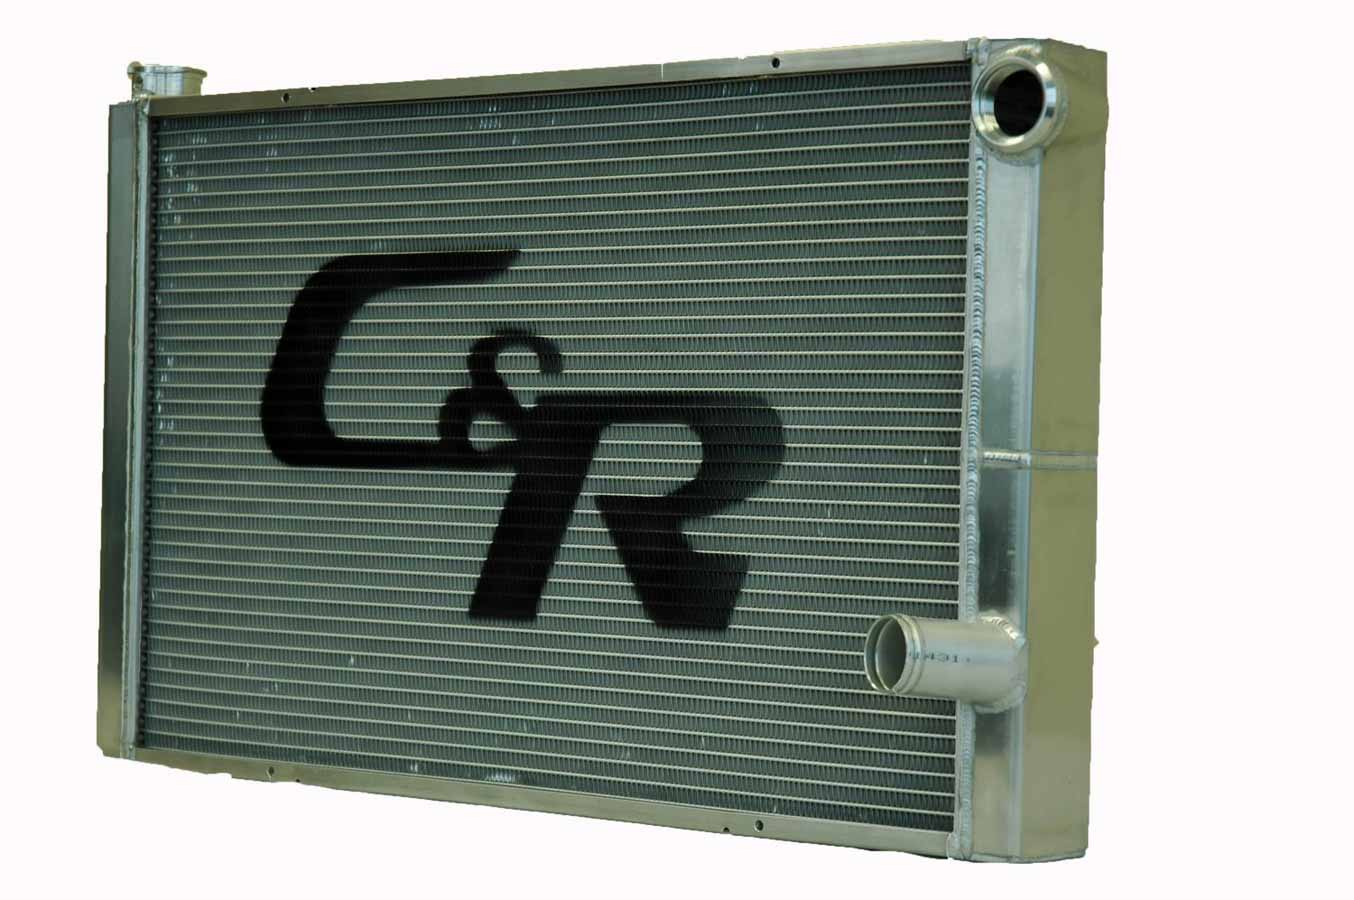 """C AND R 28"""" W x 19"""" H x 1-3 4"""" D Aluminum Dual Pass Radiator P N 802-28191 by C AND R Racing Radiators"""